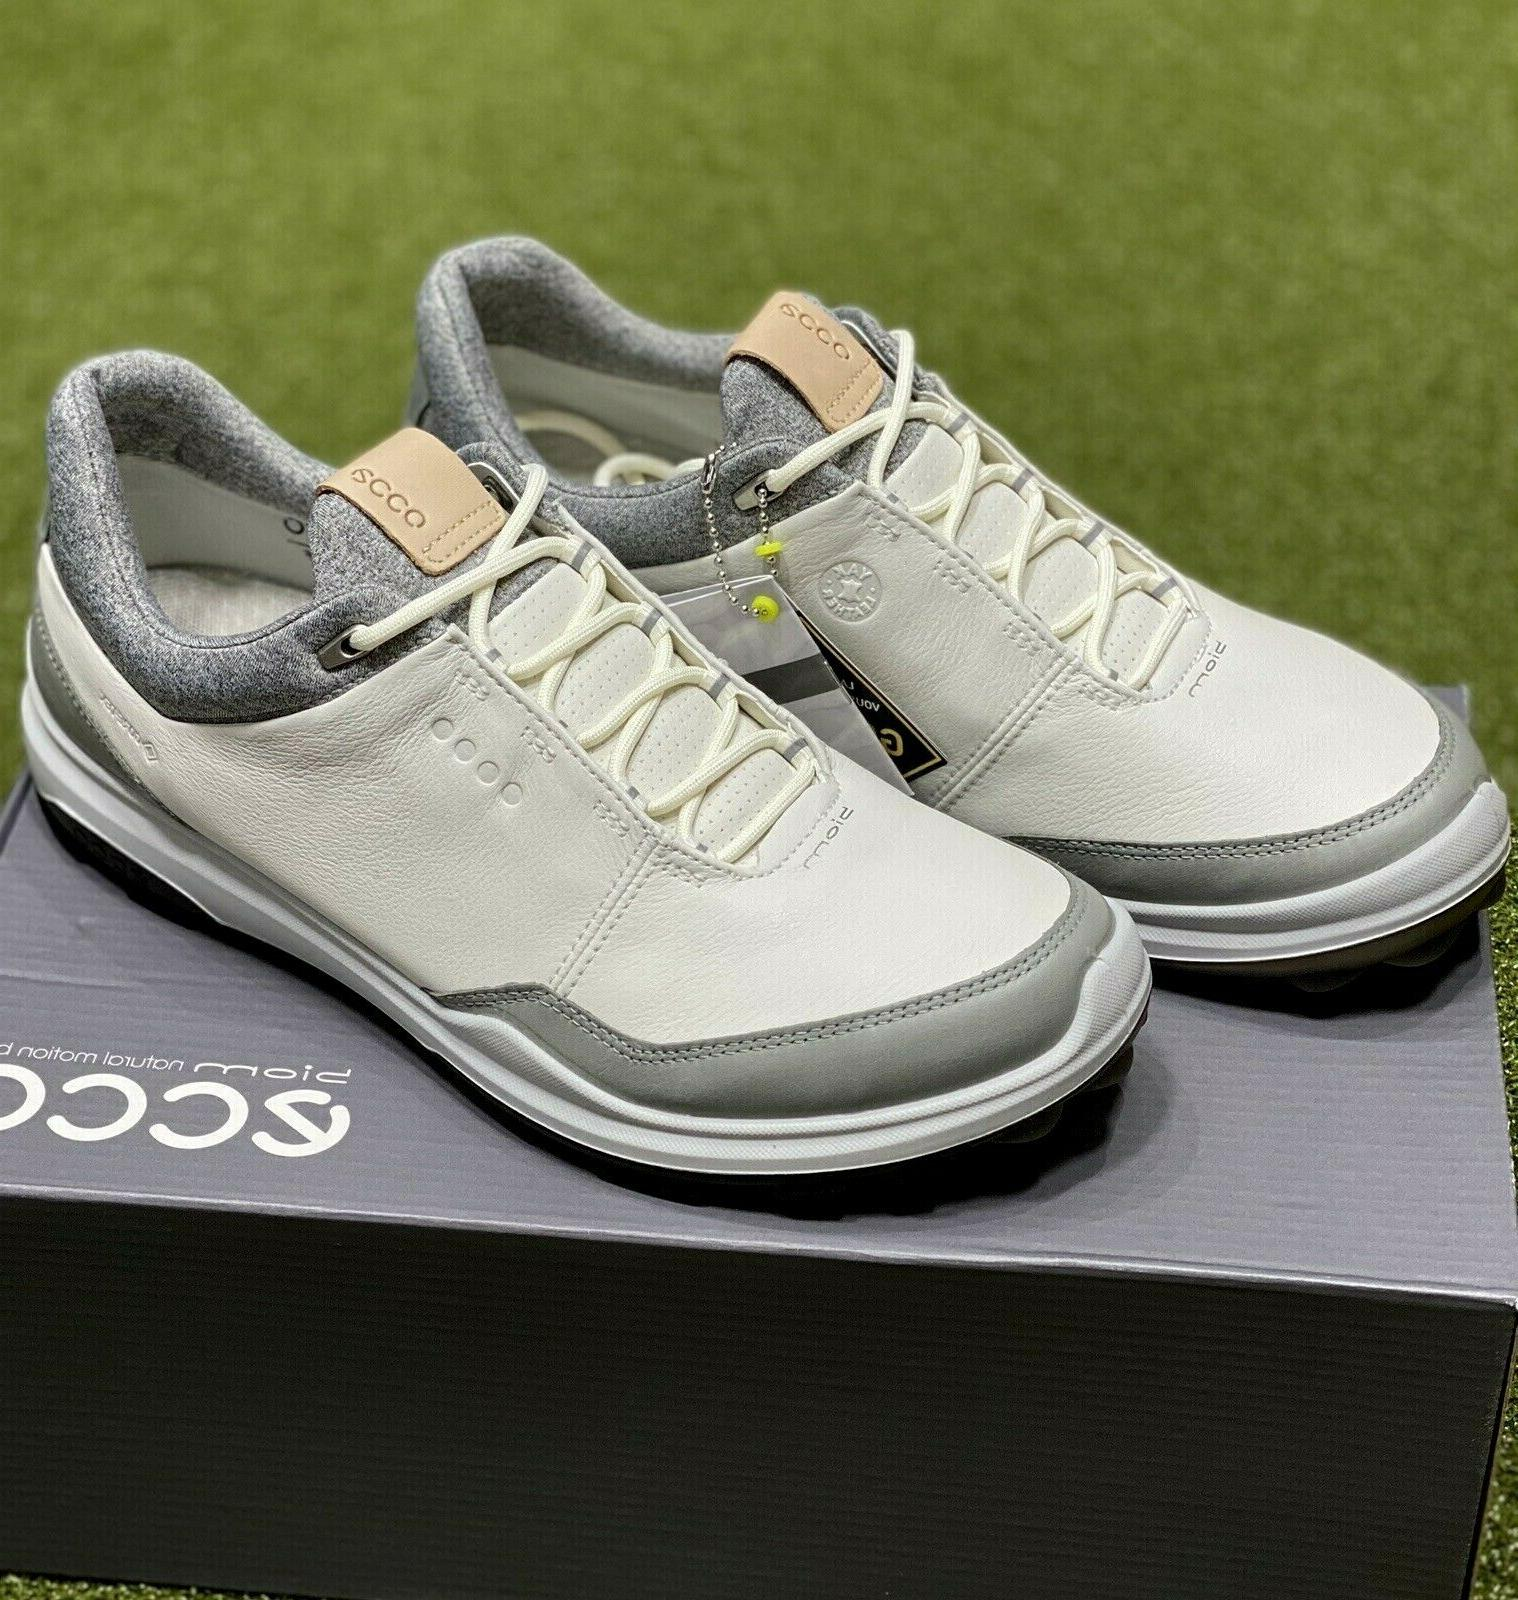 ECCO Biom Spikeless Size 42 White/Grey #72342